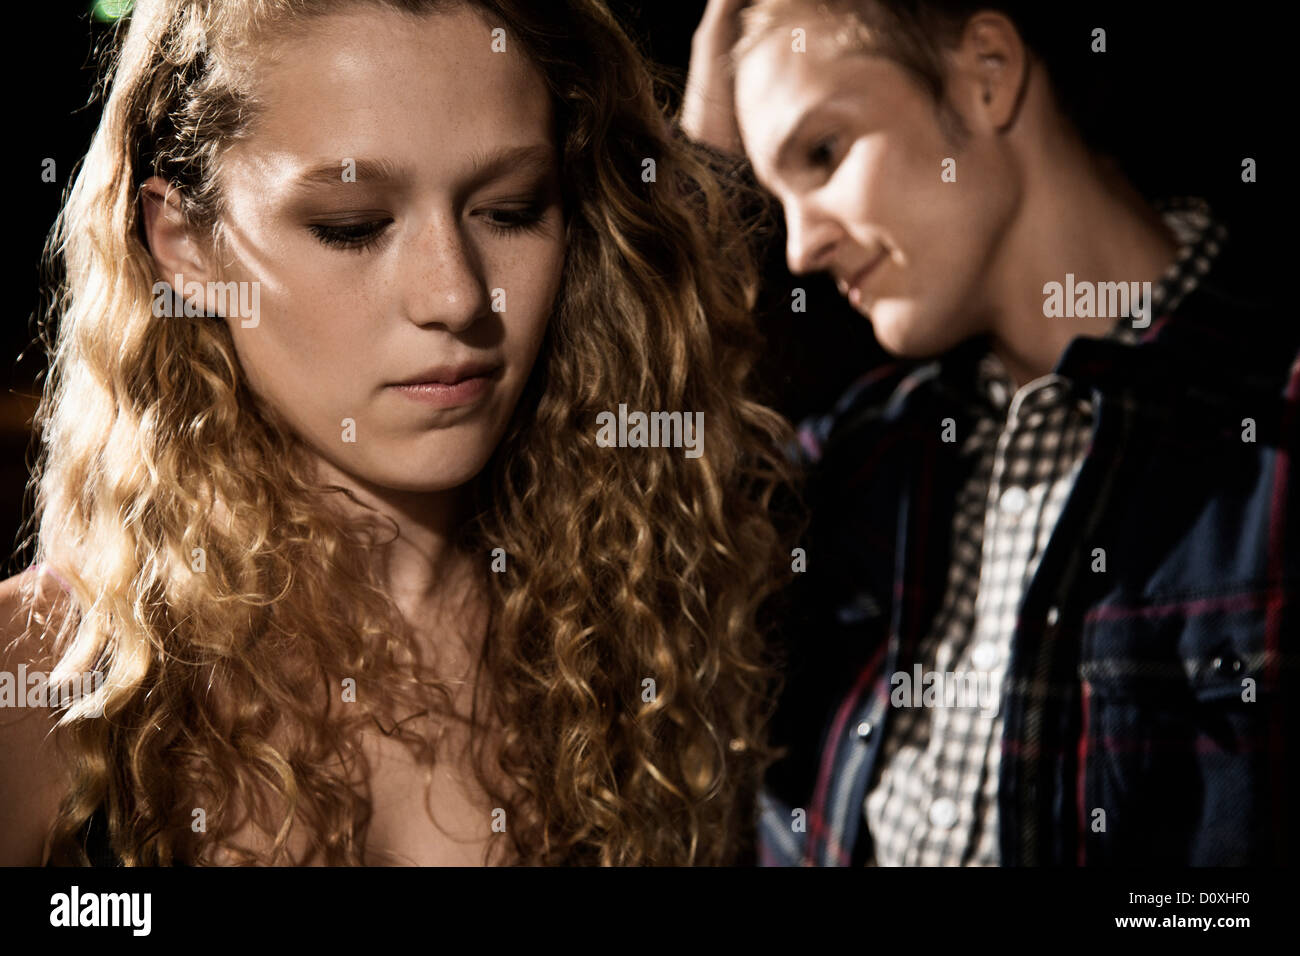 Couple close up, girl looking down - Stock Image